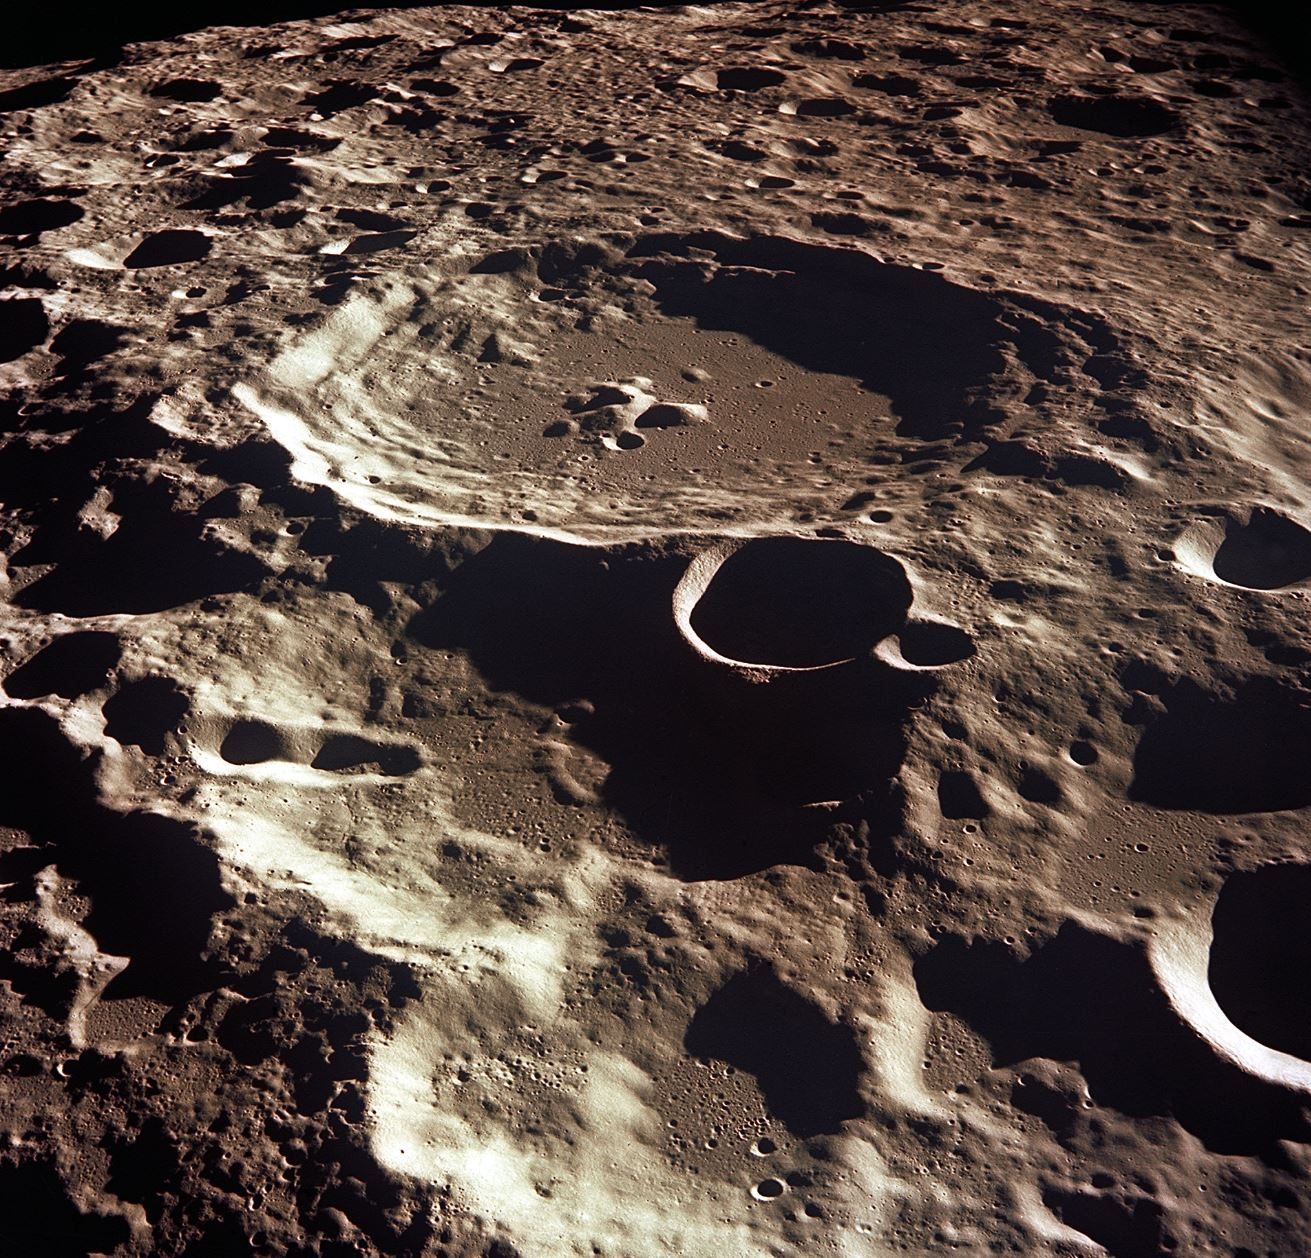 The crater Daedalus on the far side of the Moon as seen from the Apollo 11 spacecraft in lunar orbit. Daedalus has a diameter of about 80km. - Image Credits:  NASA